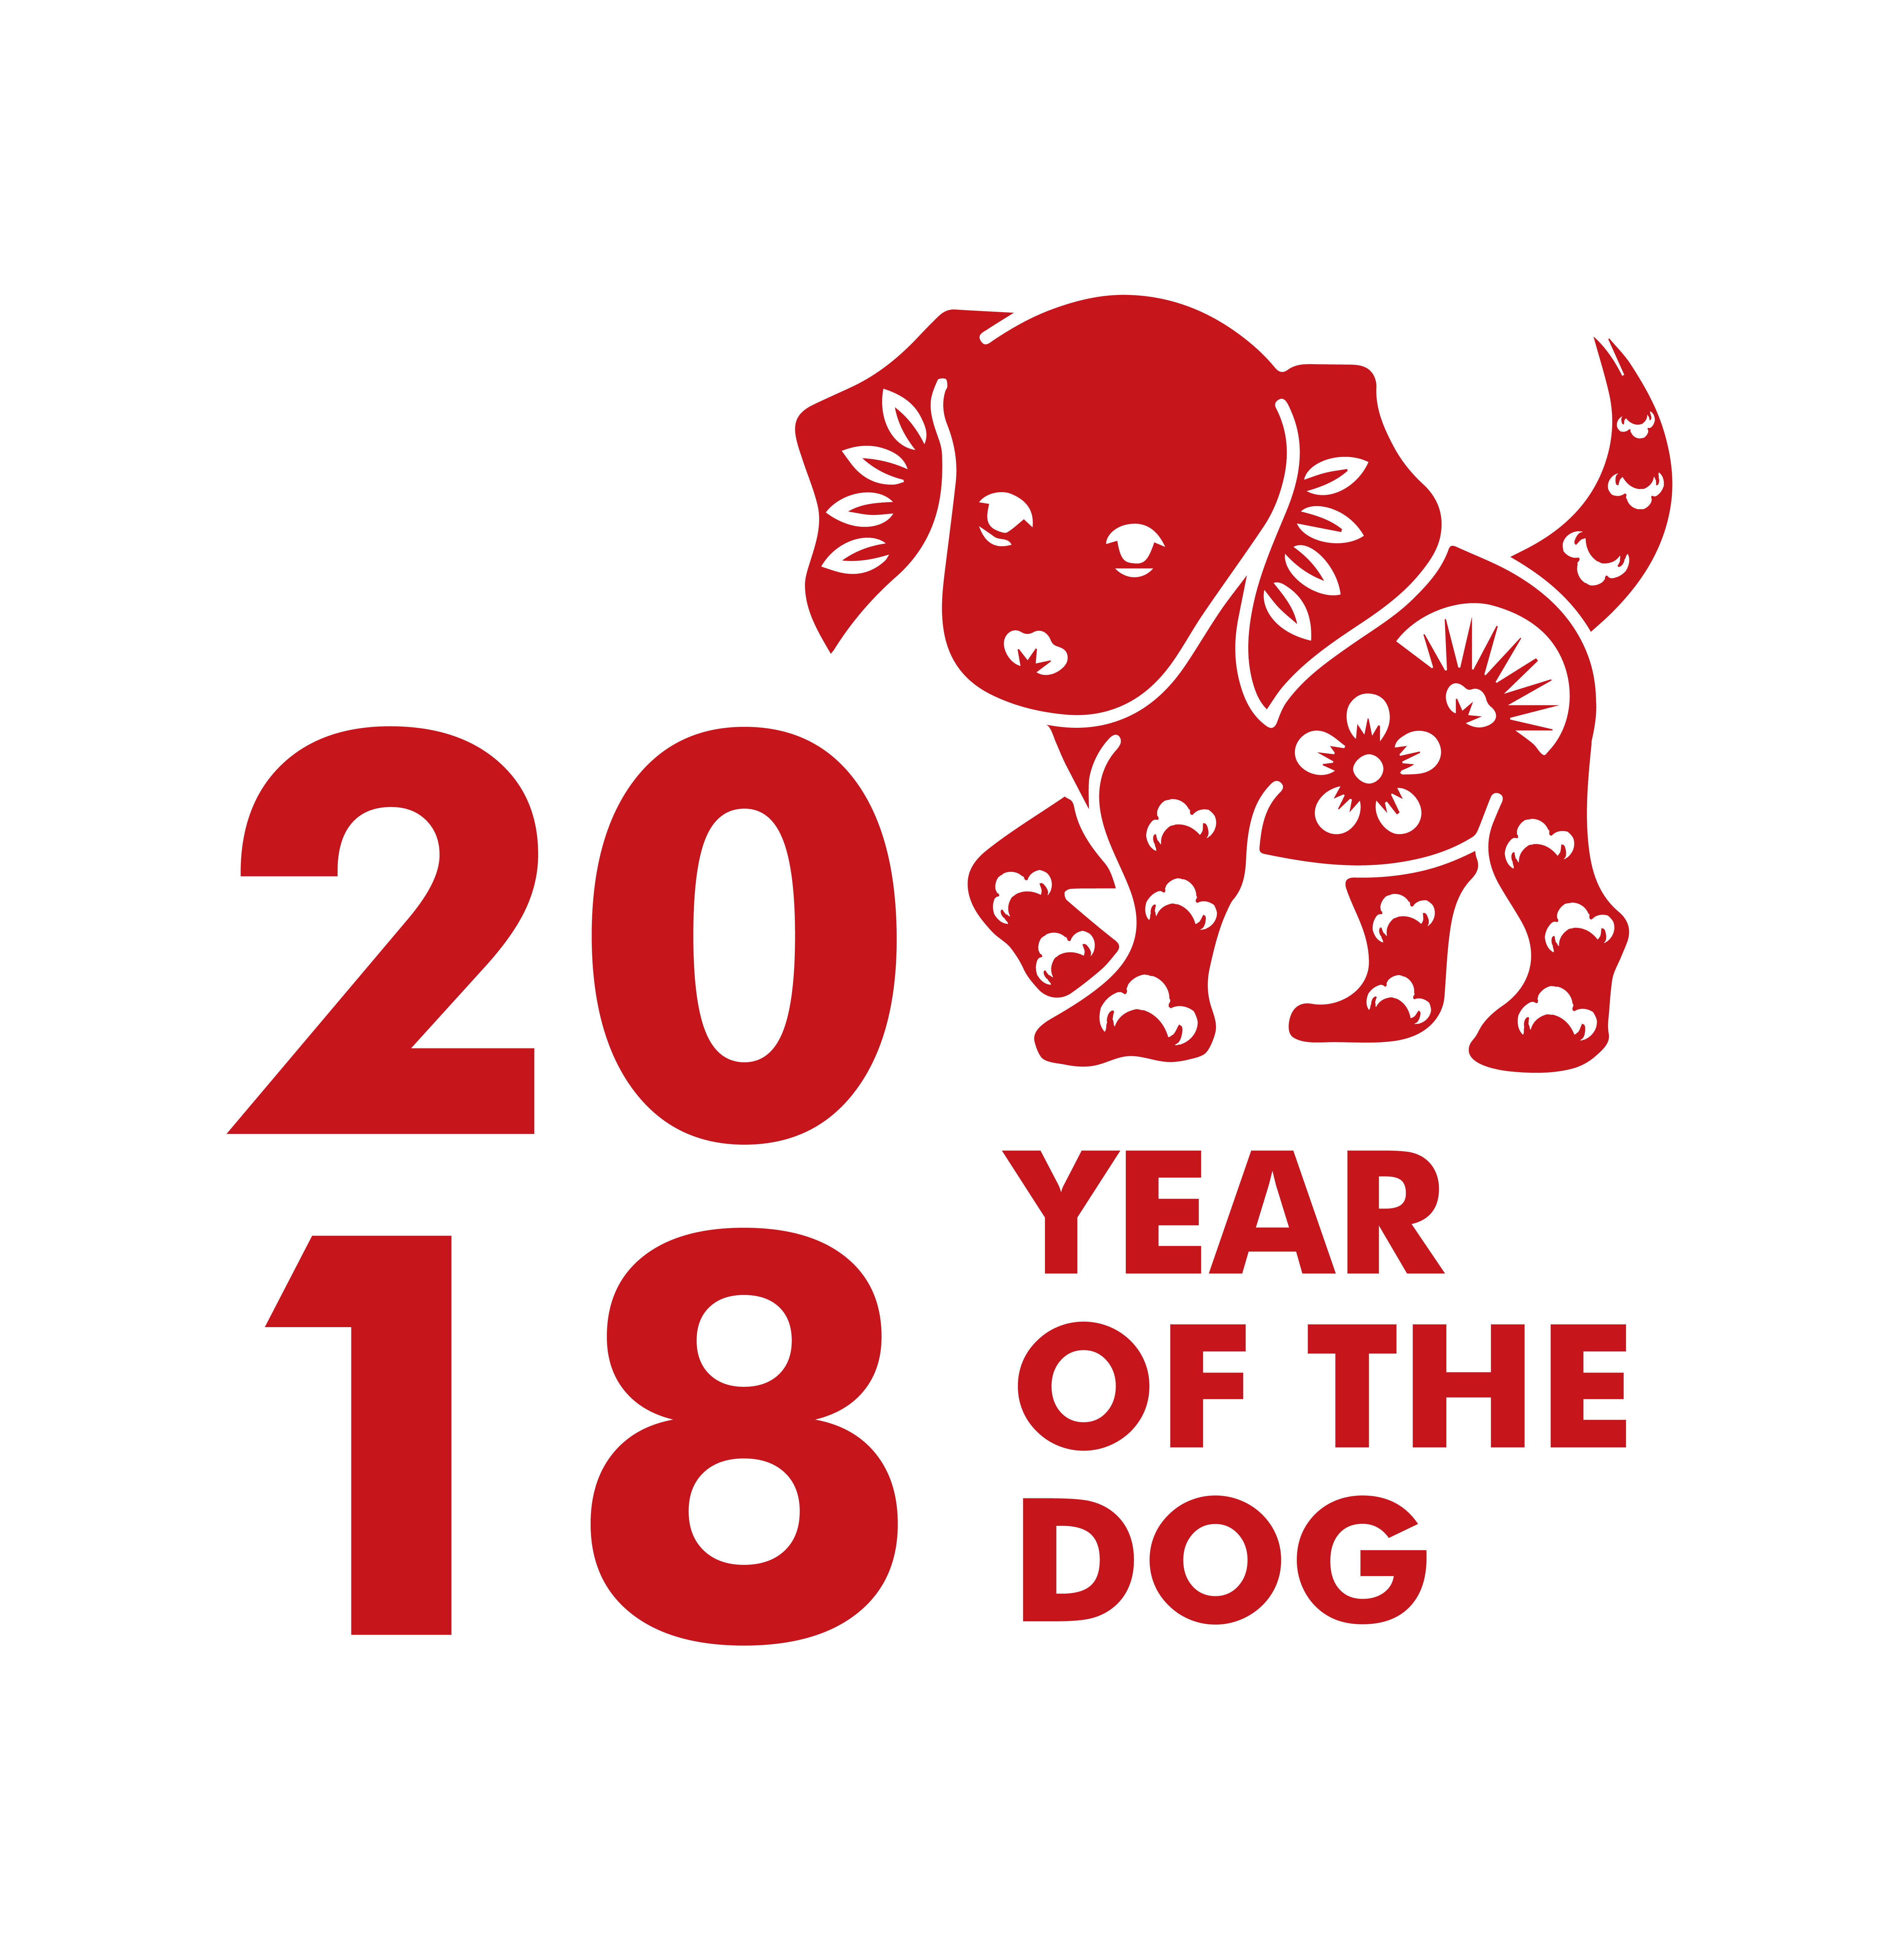 Chinese new year 2018 clipart clipart images gallery for free.